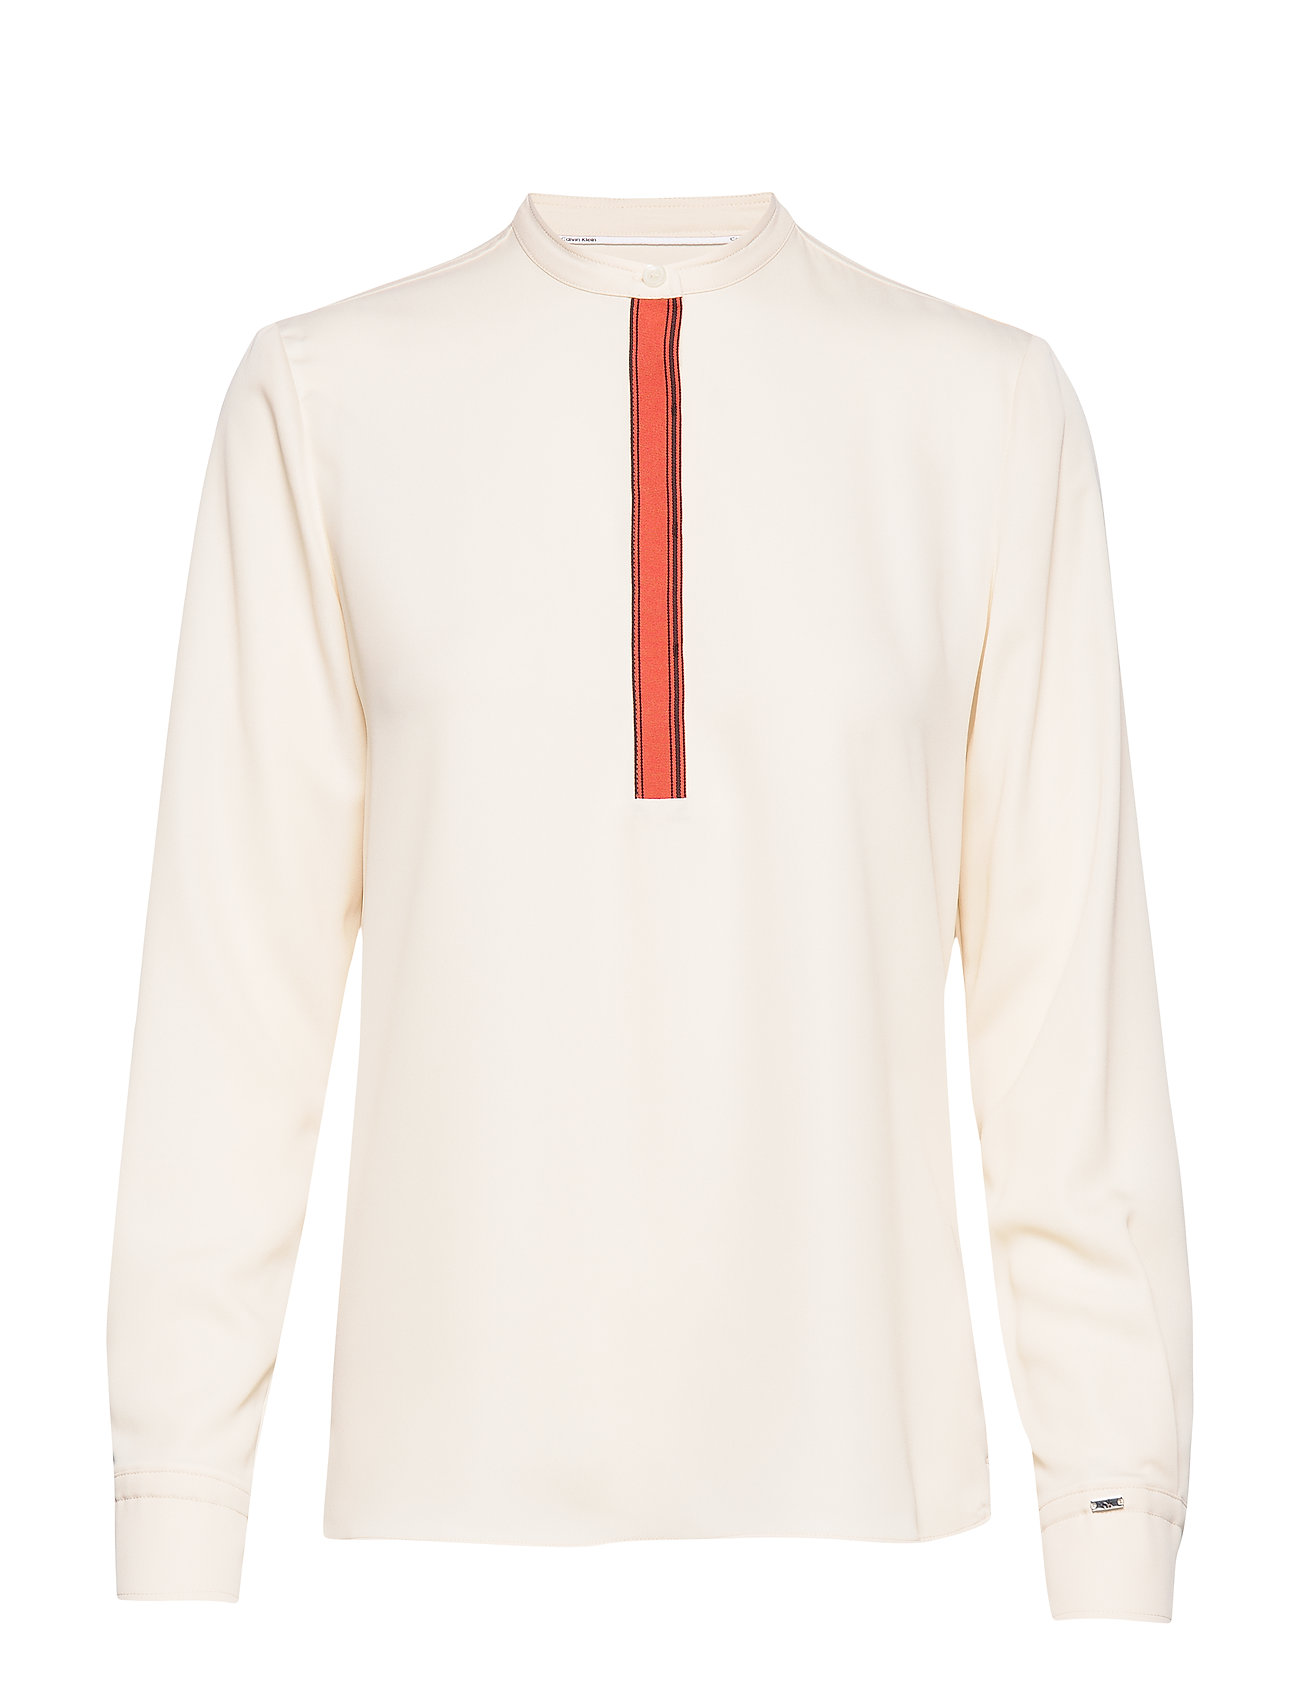 Calvin Klein LS PLACKET DETAIL BLOUSE - WHITE SMOKE